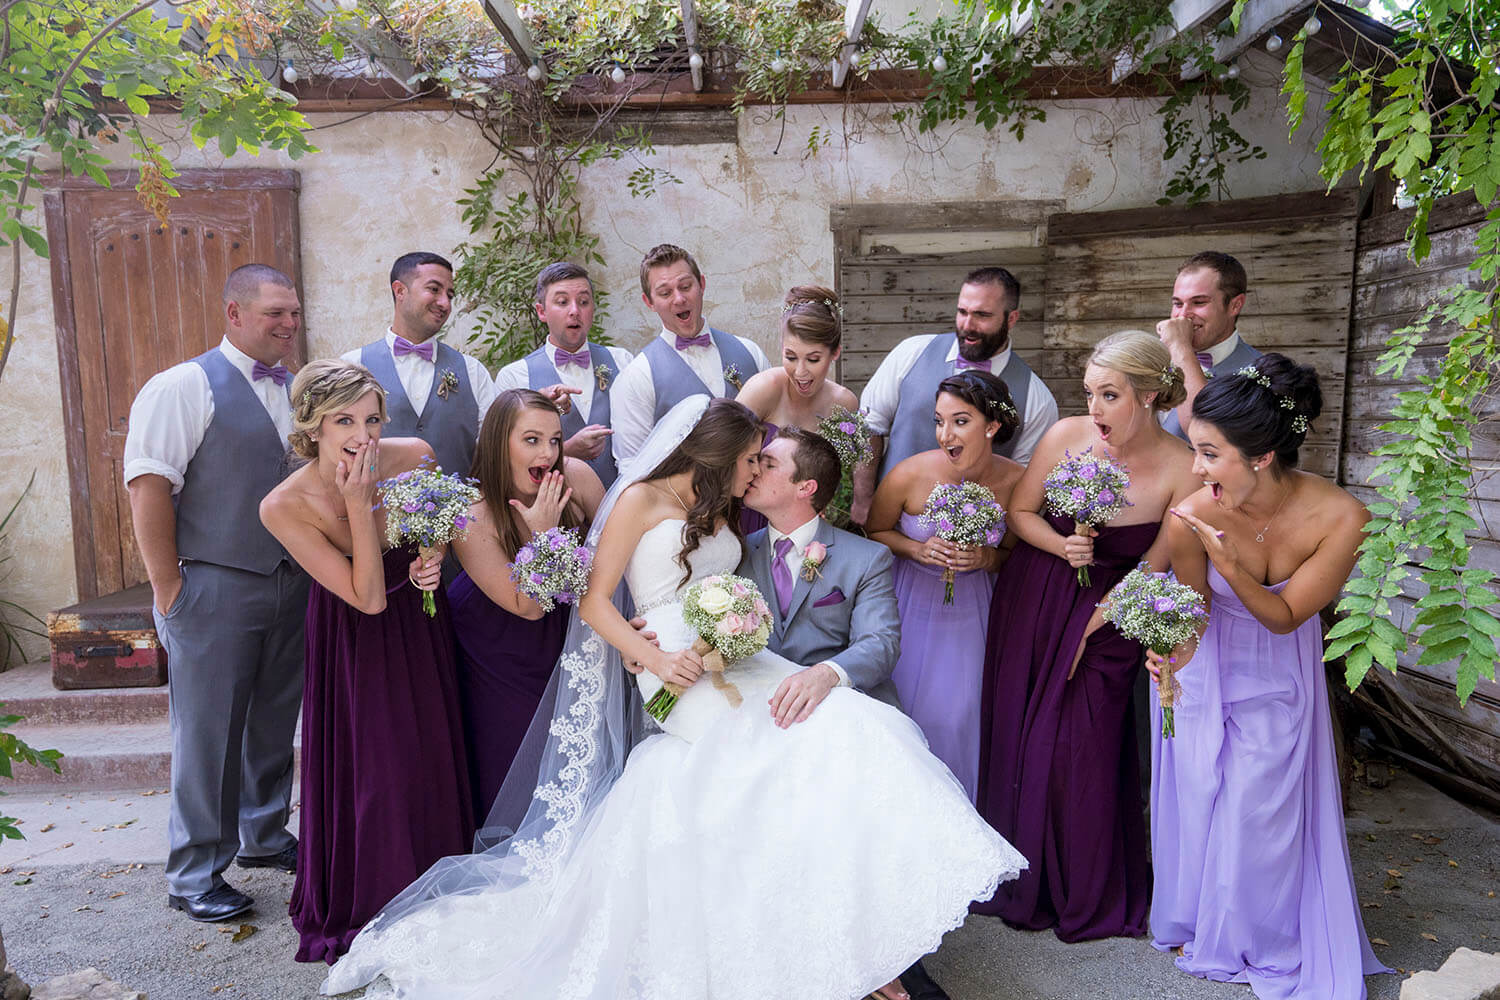 The best wedding photography captures that first wedding kiss.